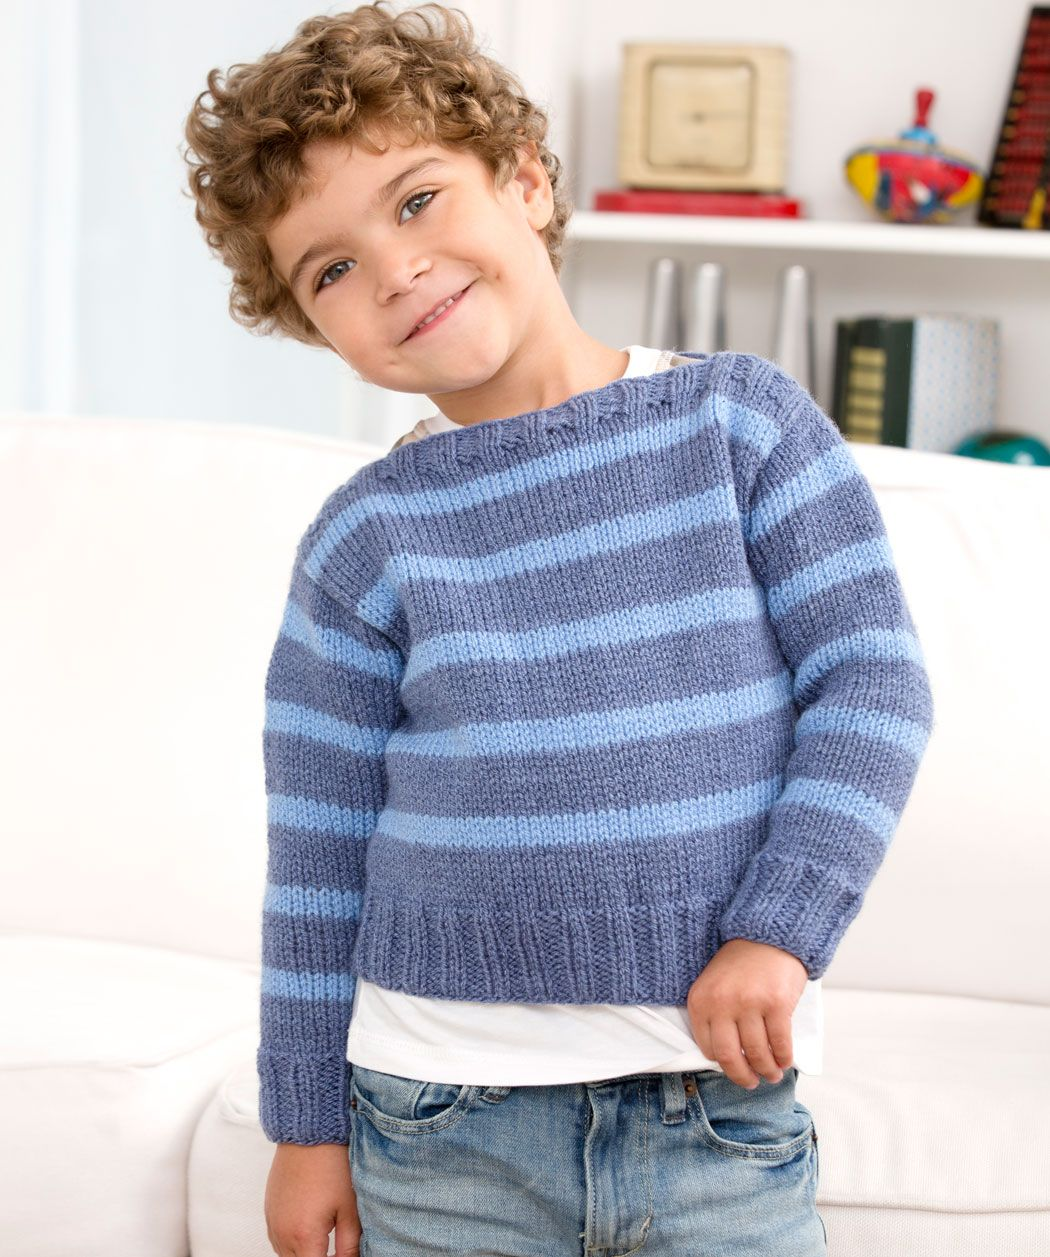 A comfy striped knit pullover is the perfect fit for an active boy ...